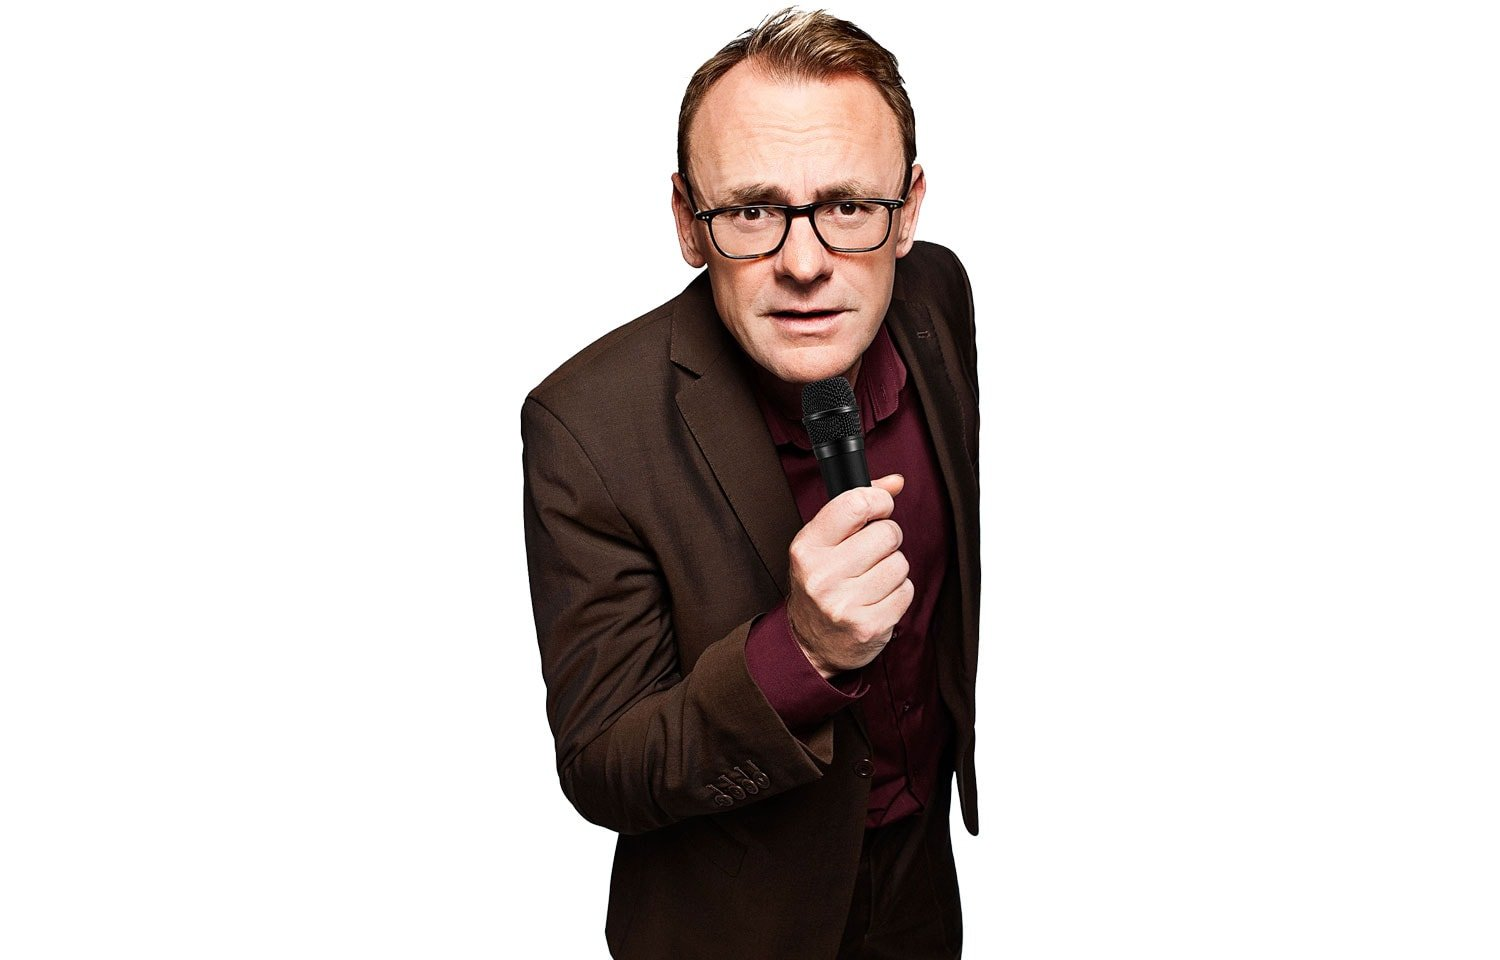 GRAB SEAN LOCK'S FIRST ARTWORK AND RAISE MONEY FOR CHARITY